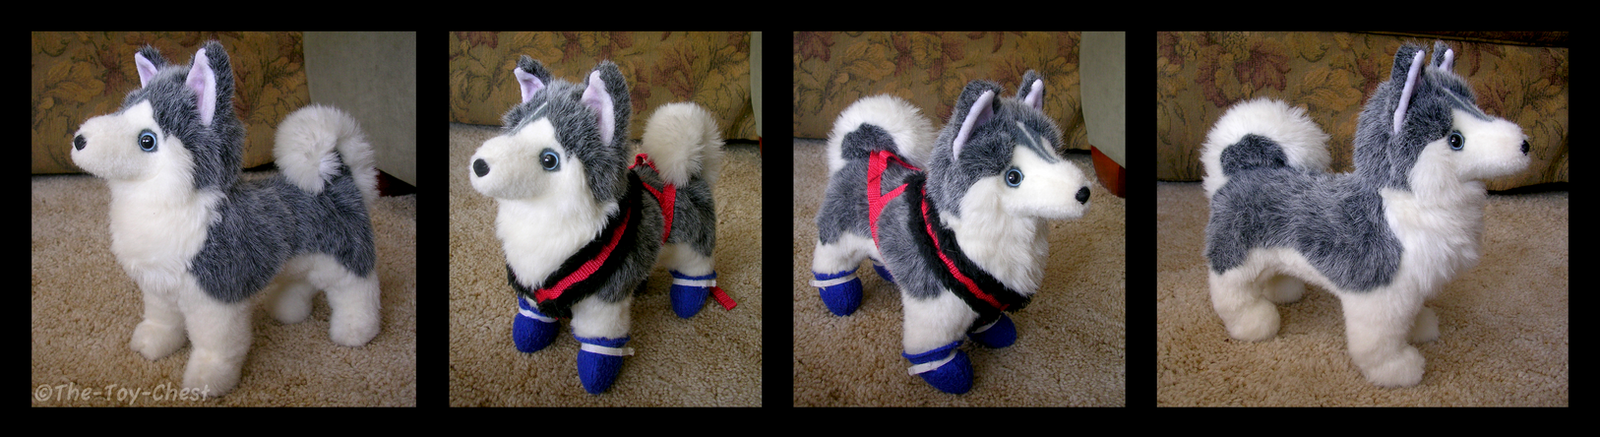 American Girl Doll - Husky by The-Toy-Chest